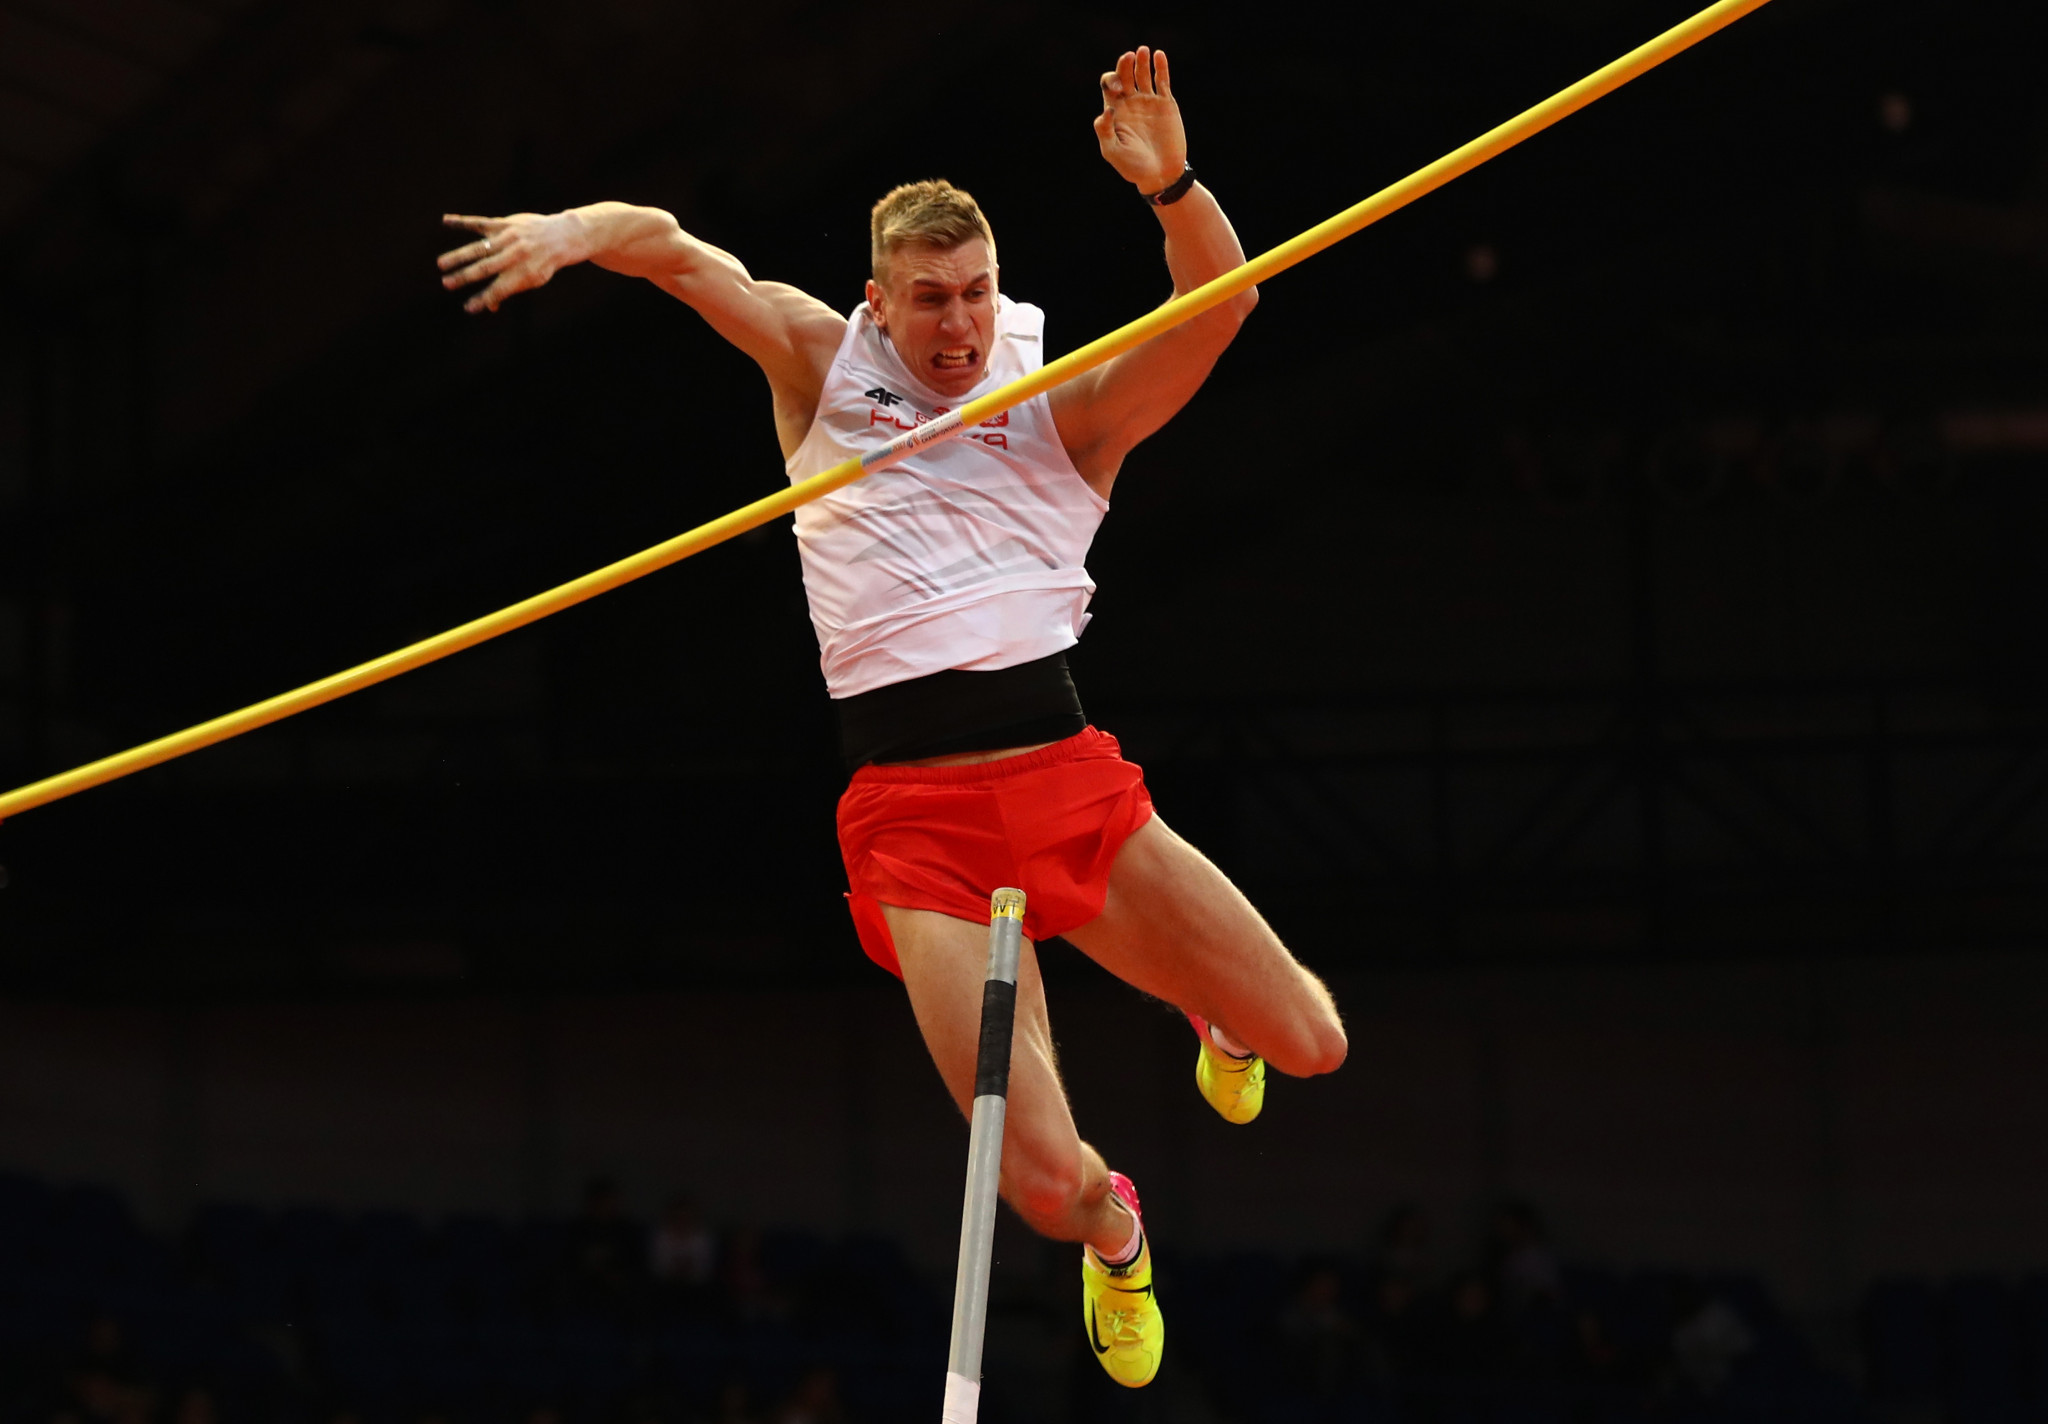 Lisek clinches pole vault title on home soil at IAAF World Indoor Tour